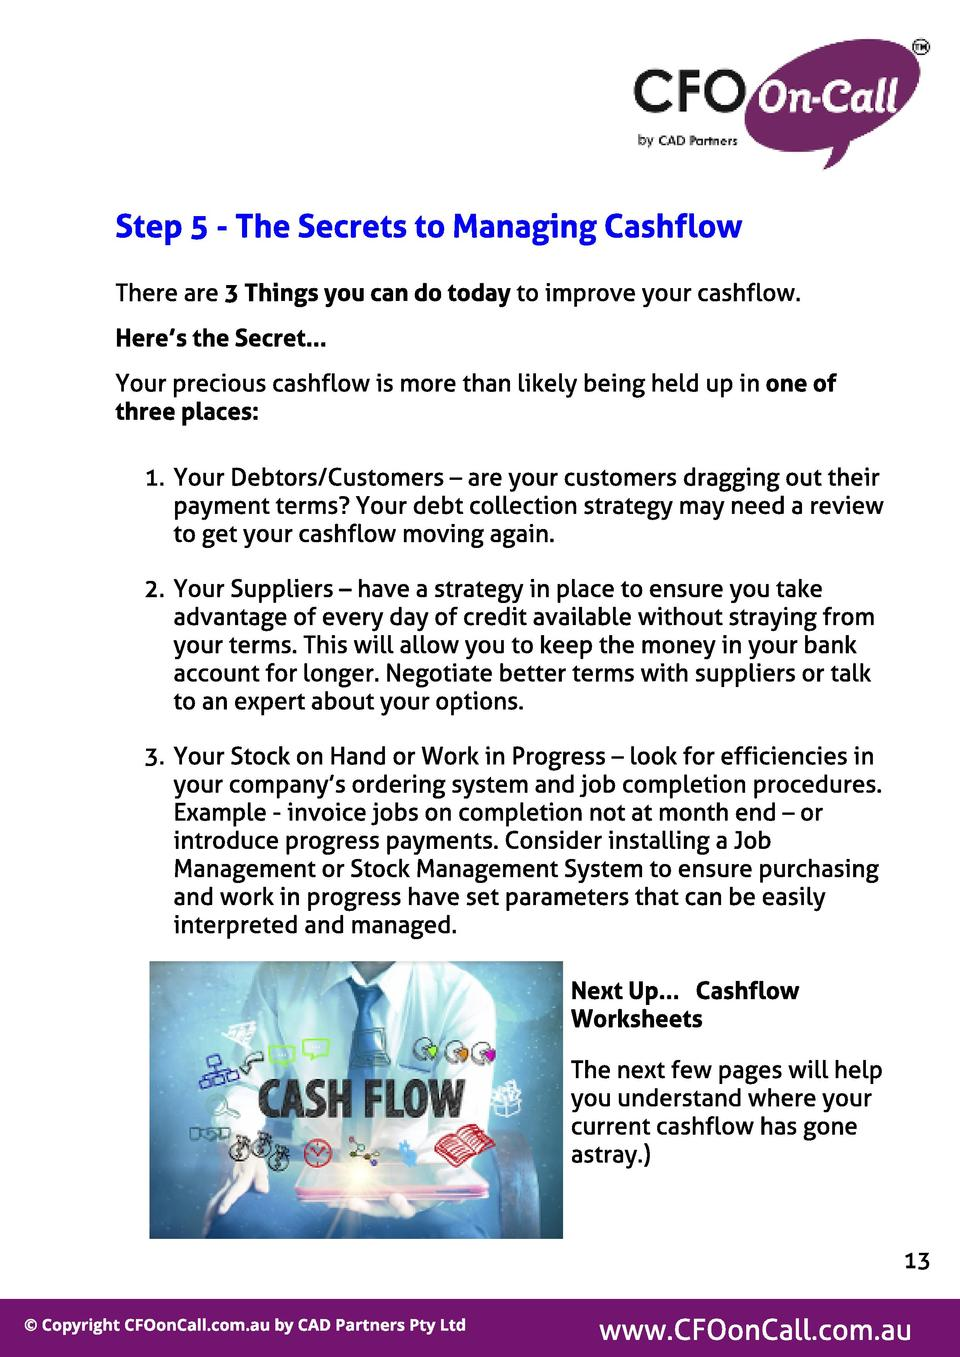 St ep 5 - The Secret s t o Managing Cashf l ow There are 3 Things you can do t oday to improve your cashflow. Here s t he ...